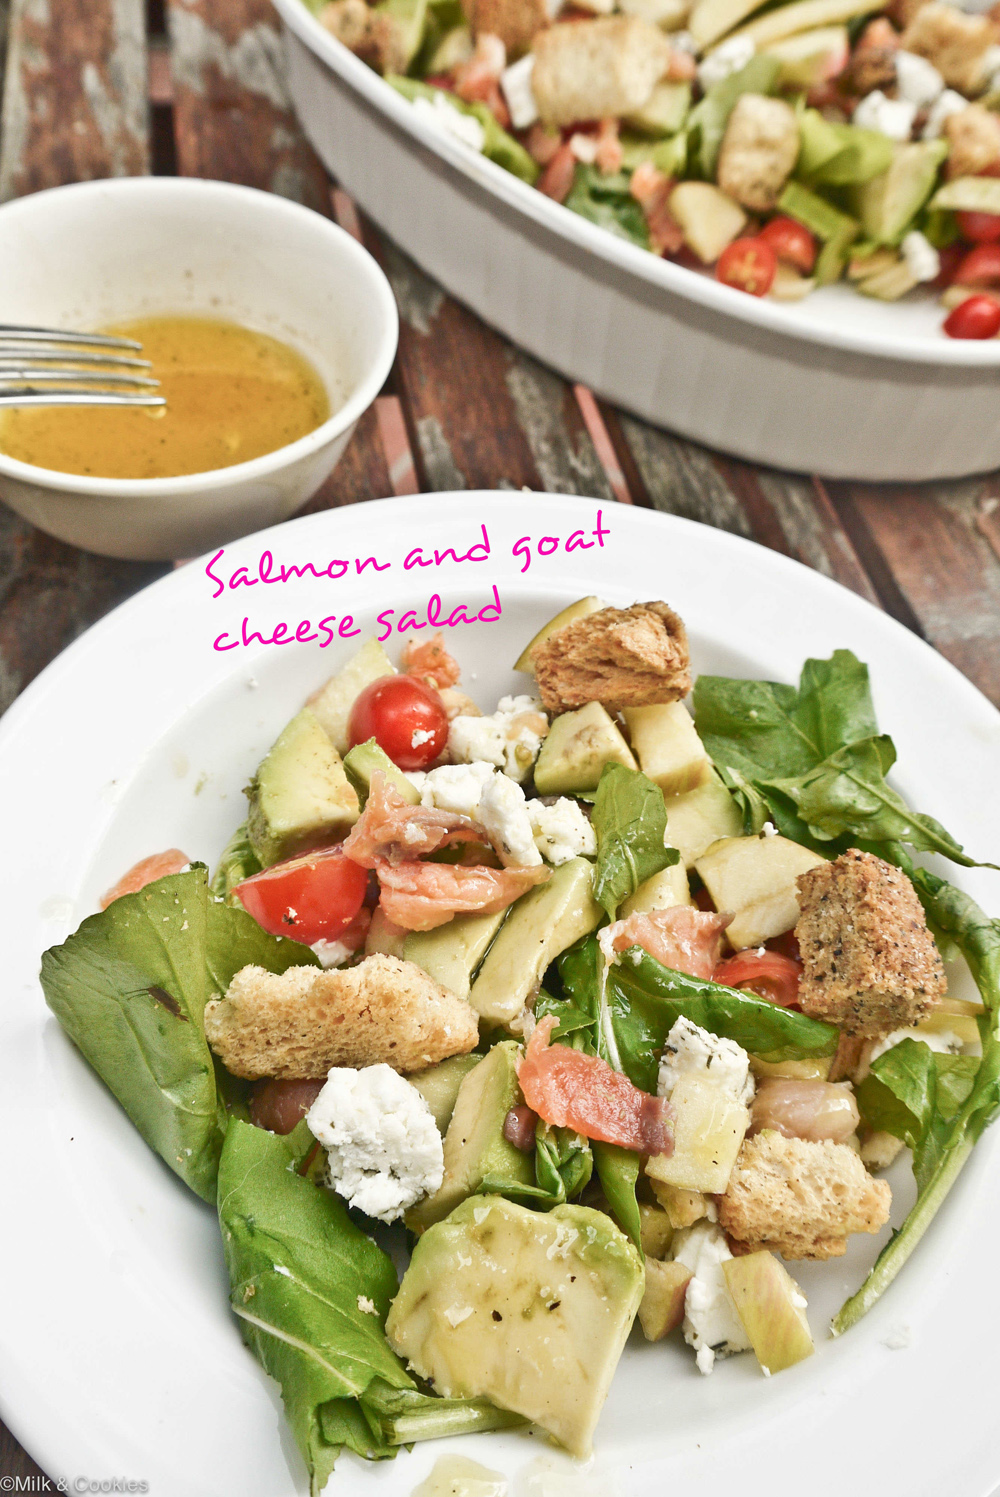 Salmon and Goats Cheese Summer Salad Recipe |Milk and Cookies